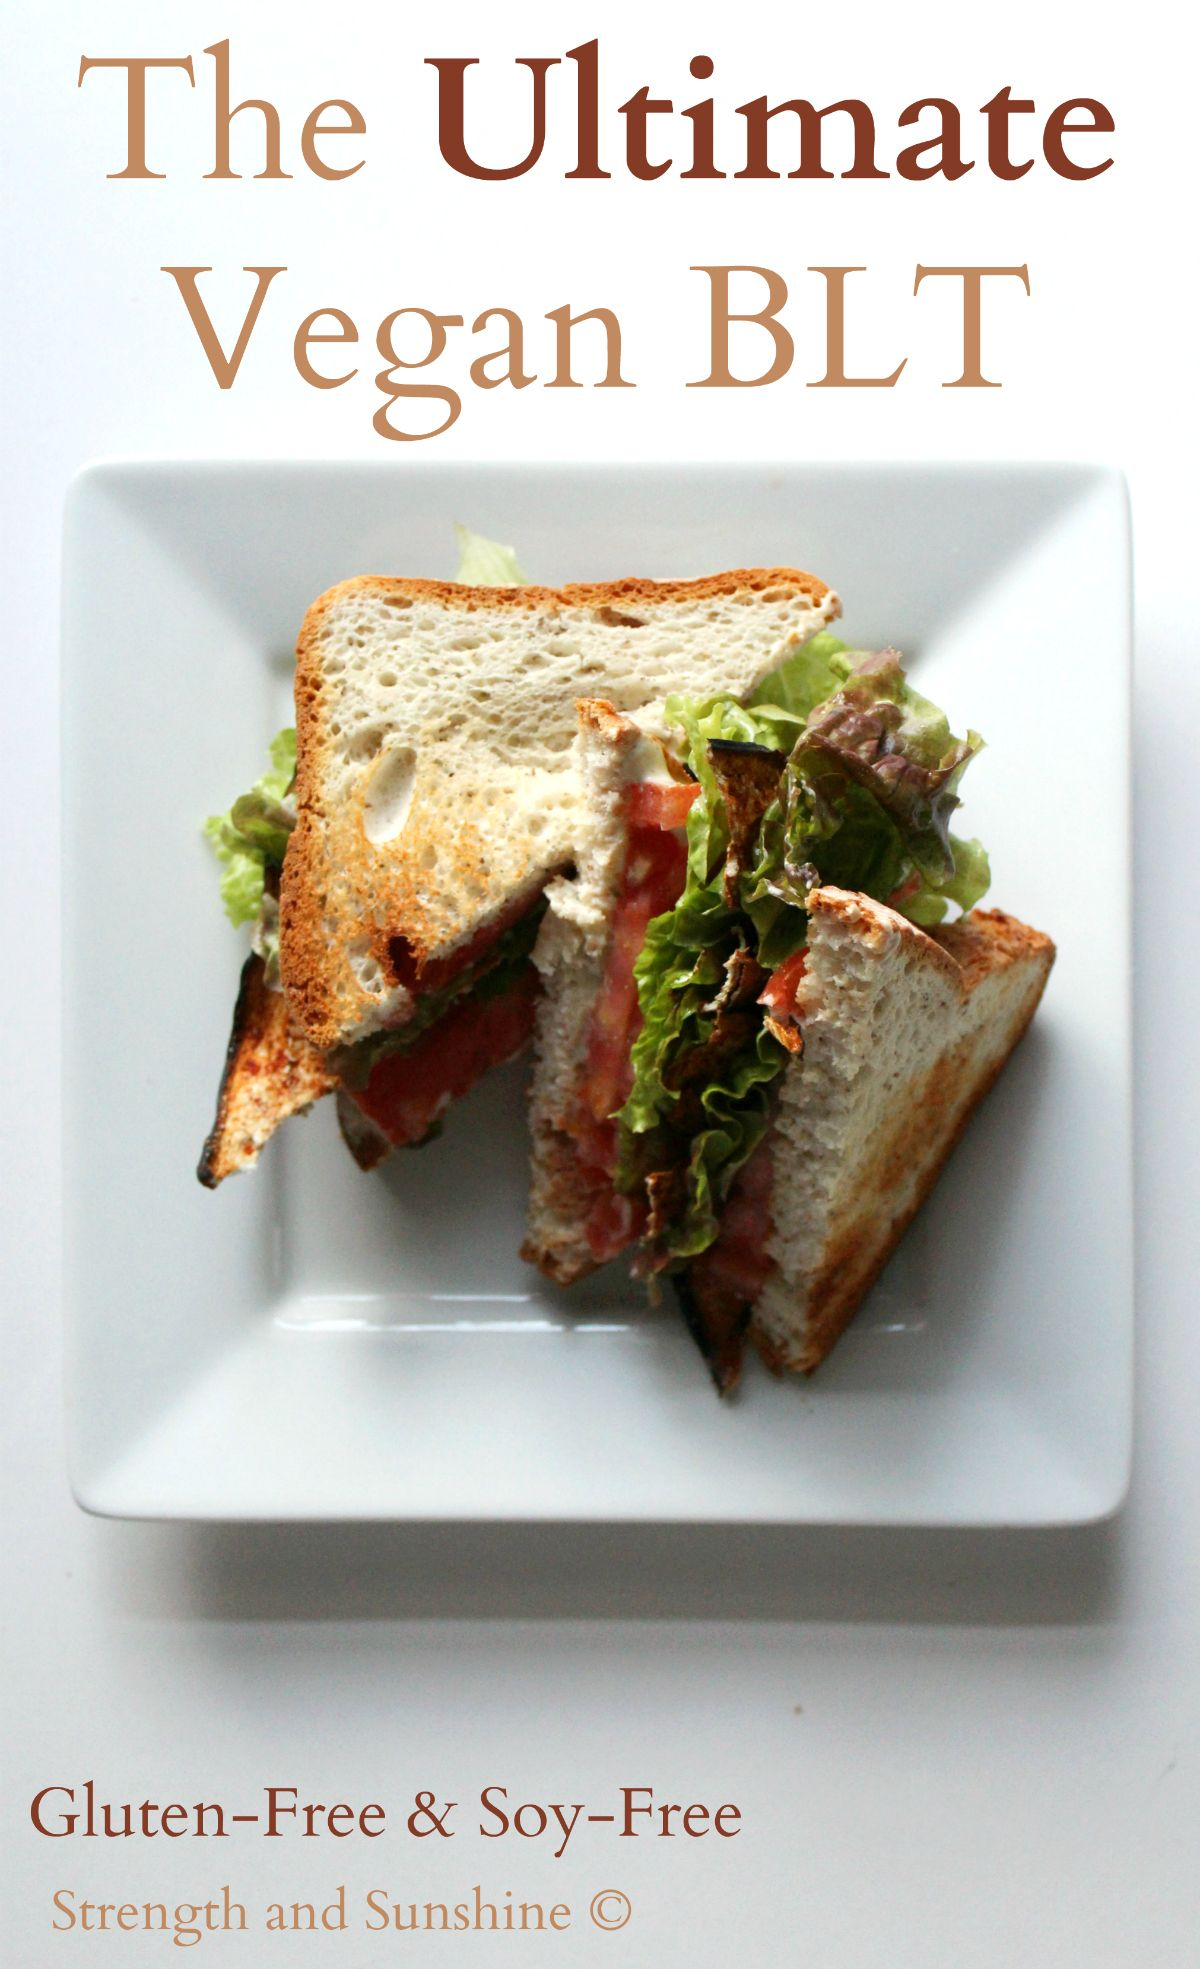 The Ultimate #Vegan BLT that's also gluten-free and soy-free. Smoky eggplant bacon, crisp lettuce, ripe tomato, and a homemade tahini based mayo, sandwiched between two toasty pieces of your favorite bread. Lunchtime will never be boring again! I'm serious here. The is the ultimate BLT. I've always been fond of BLTs and hadn't had one... Read More »